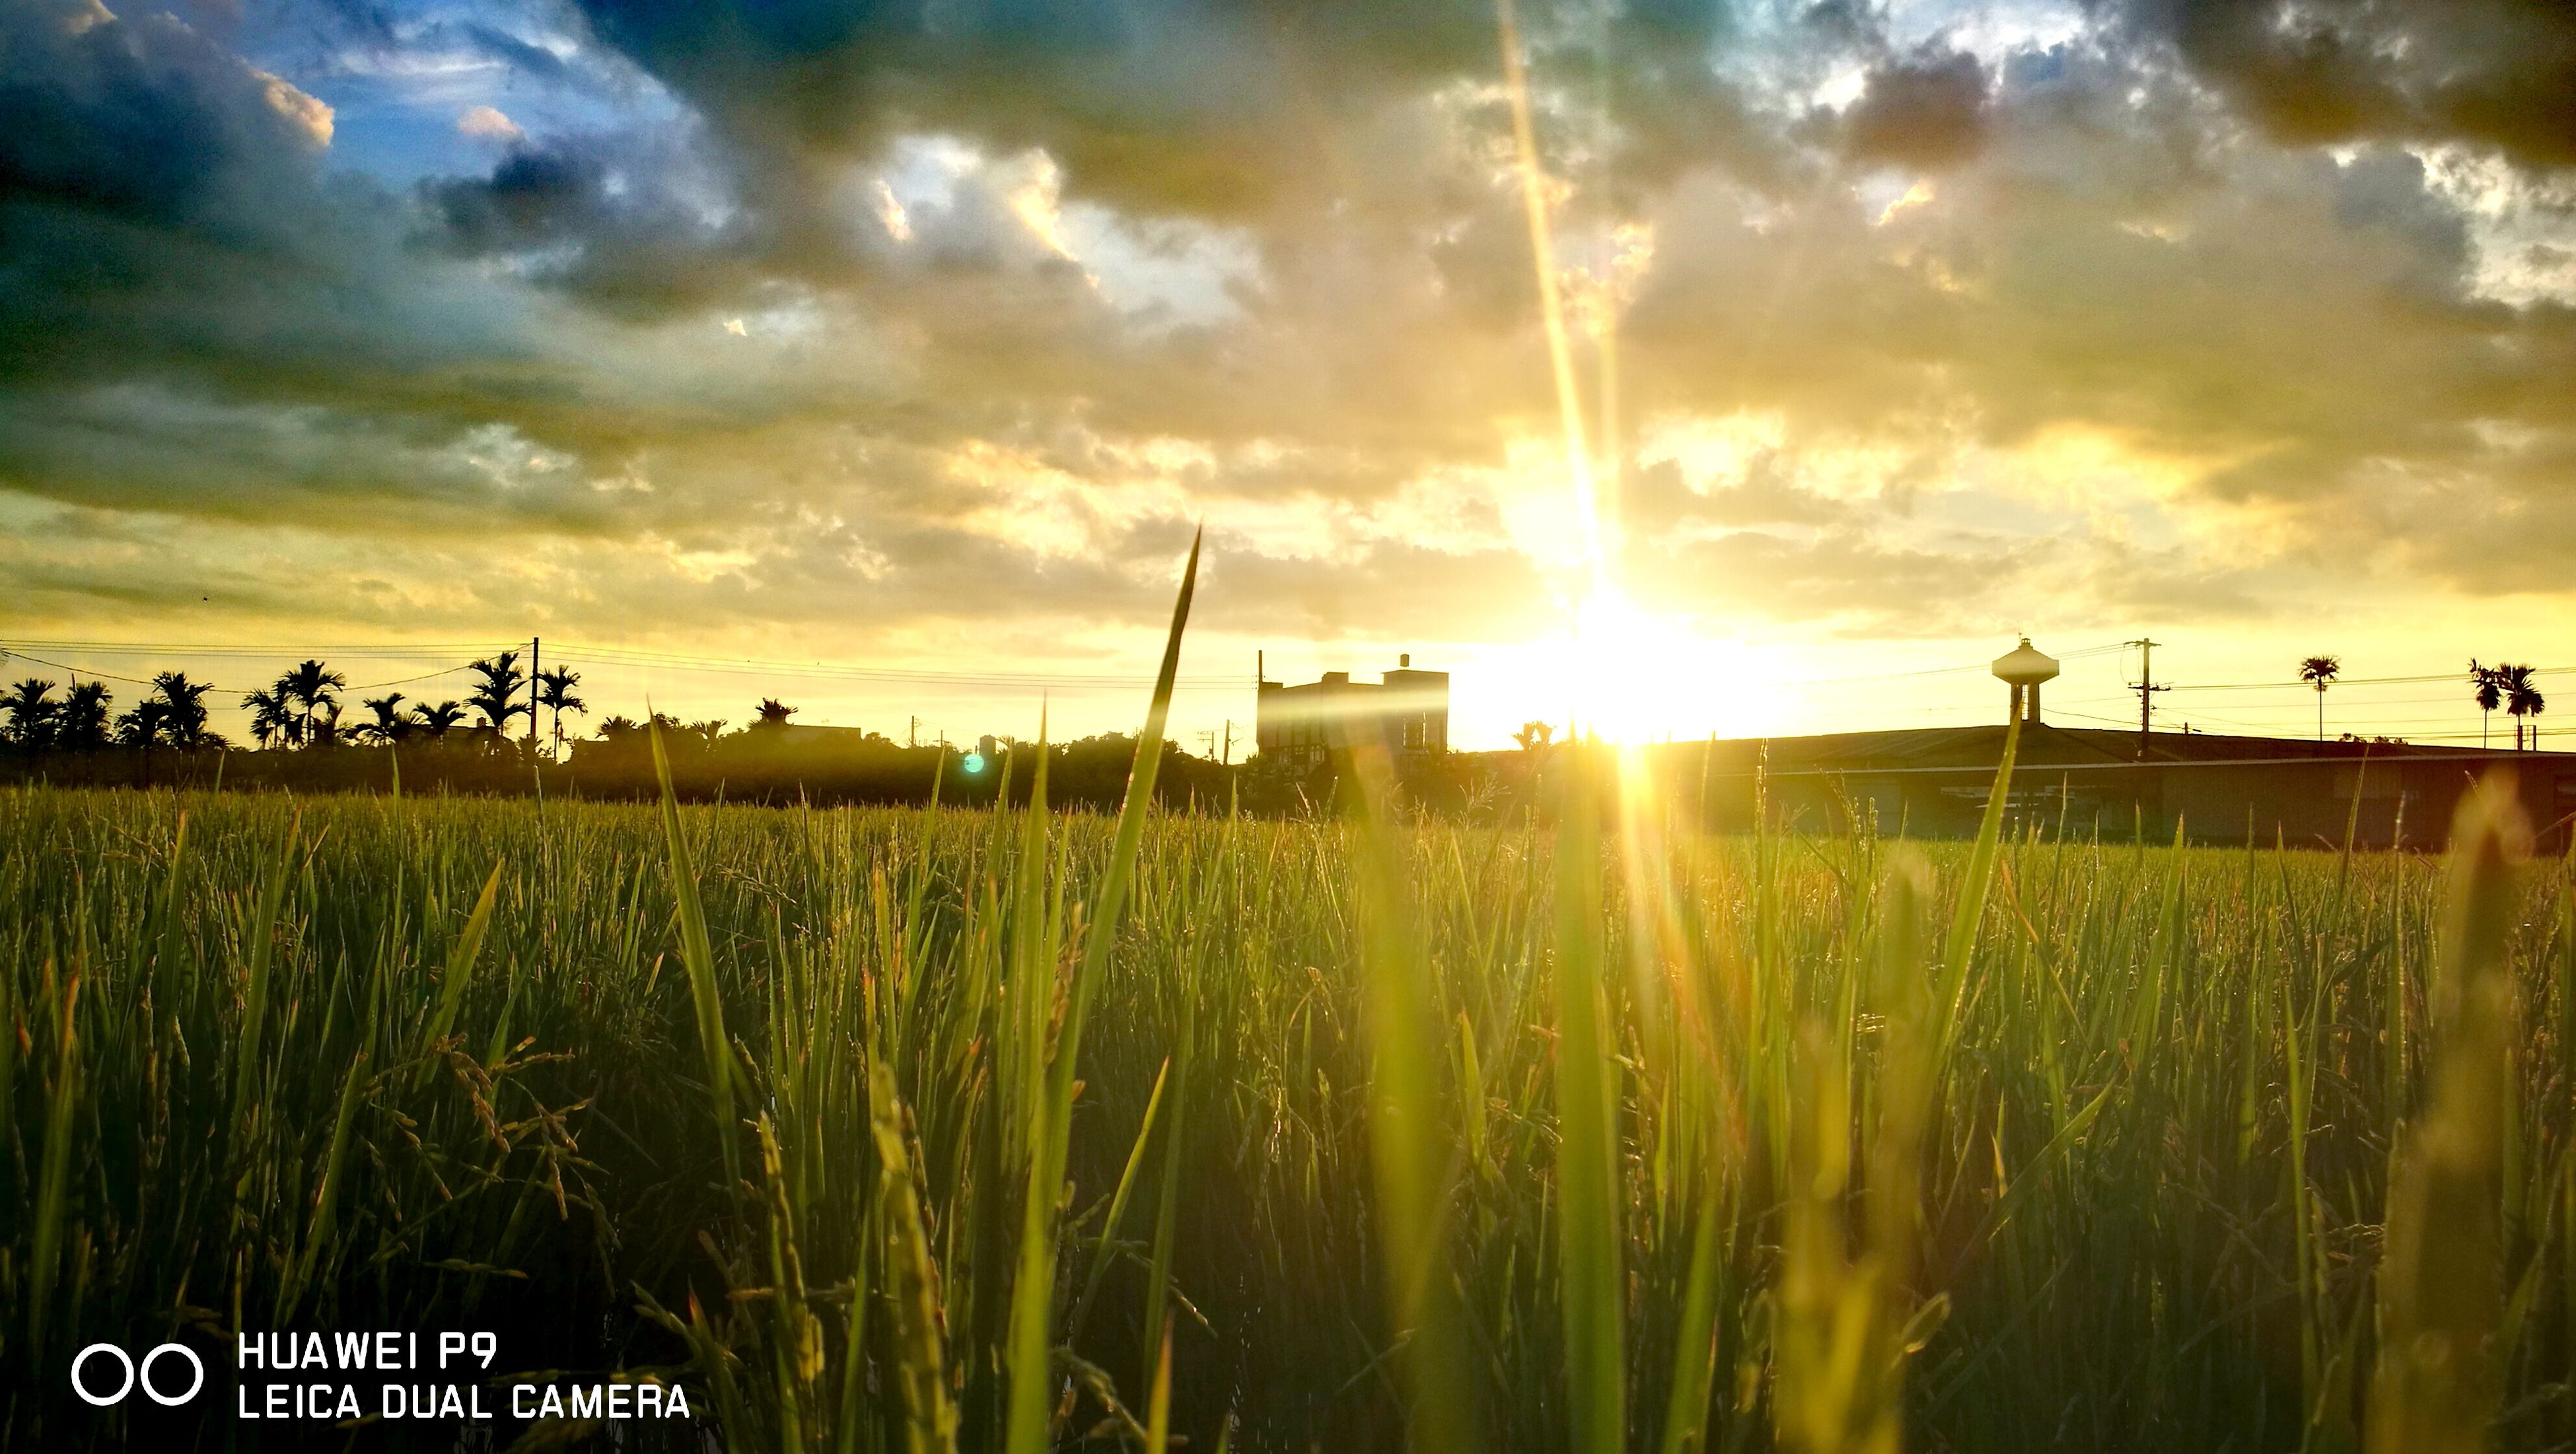 sunset, field, nature, growth, sky, sun, cloud - sky, no people, sunlight, grass, beauty in nature, agriculture, outdoors, scenics, tranquility, tranquil scene, plant, rural scene, cereal plant, day, tree